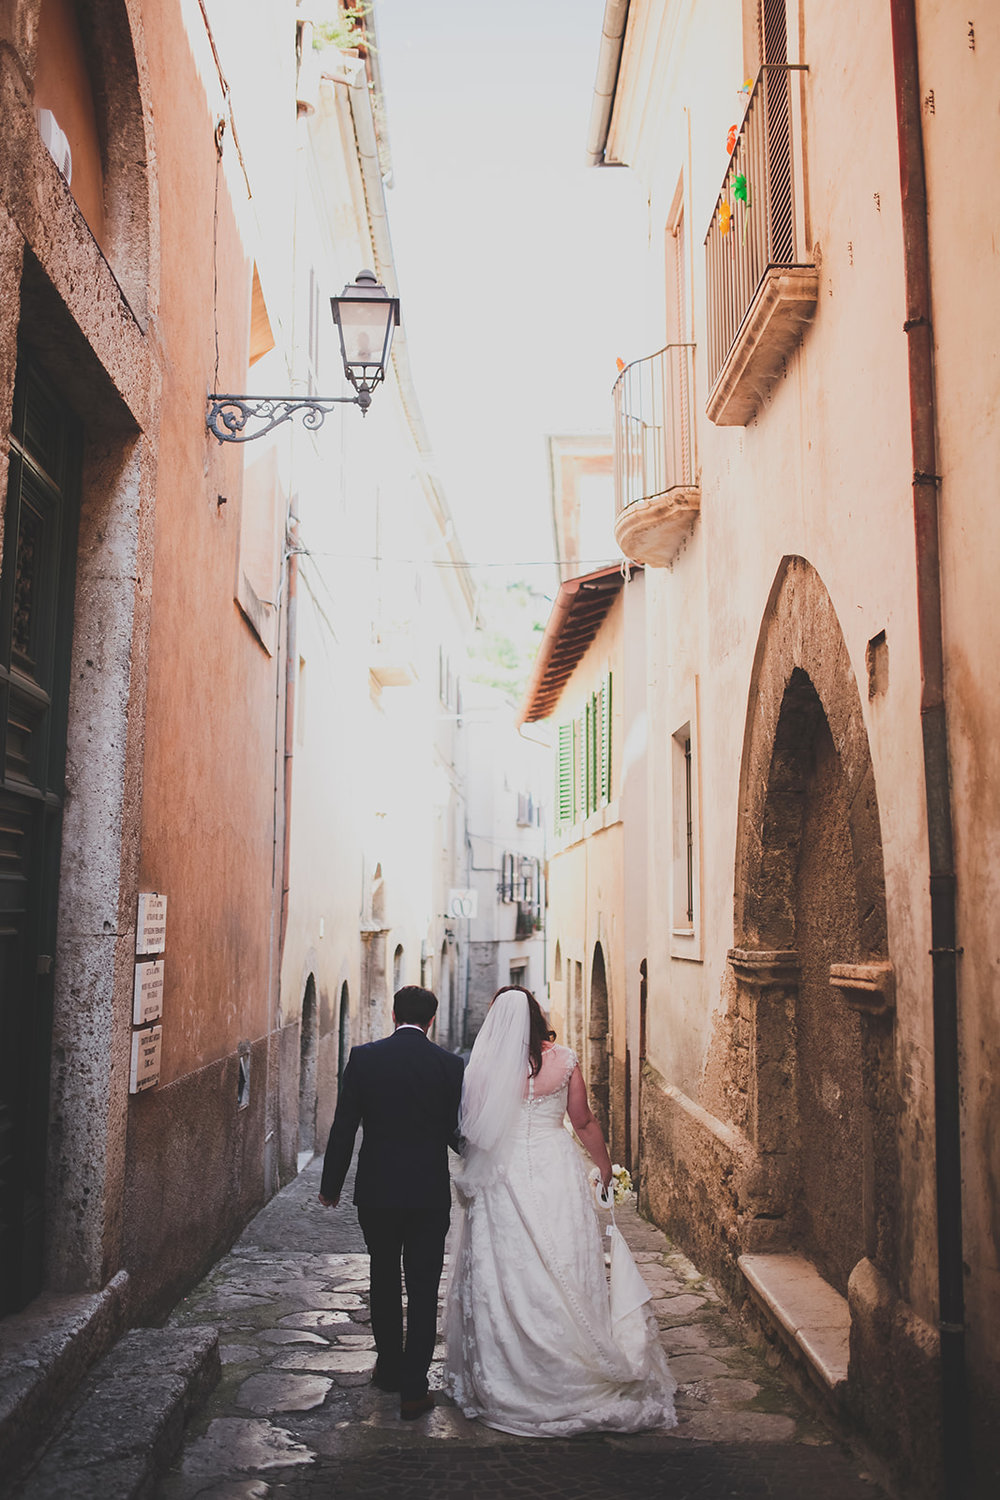 a bride and groom walk down a tall italian street. destination creative wedding photography italy. stop motion wedding films uk